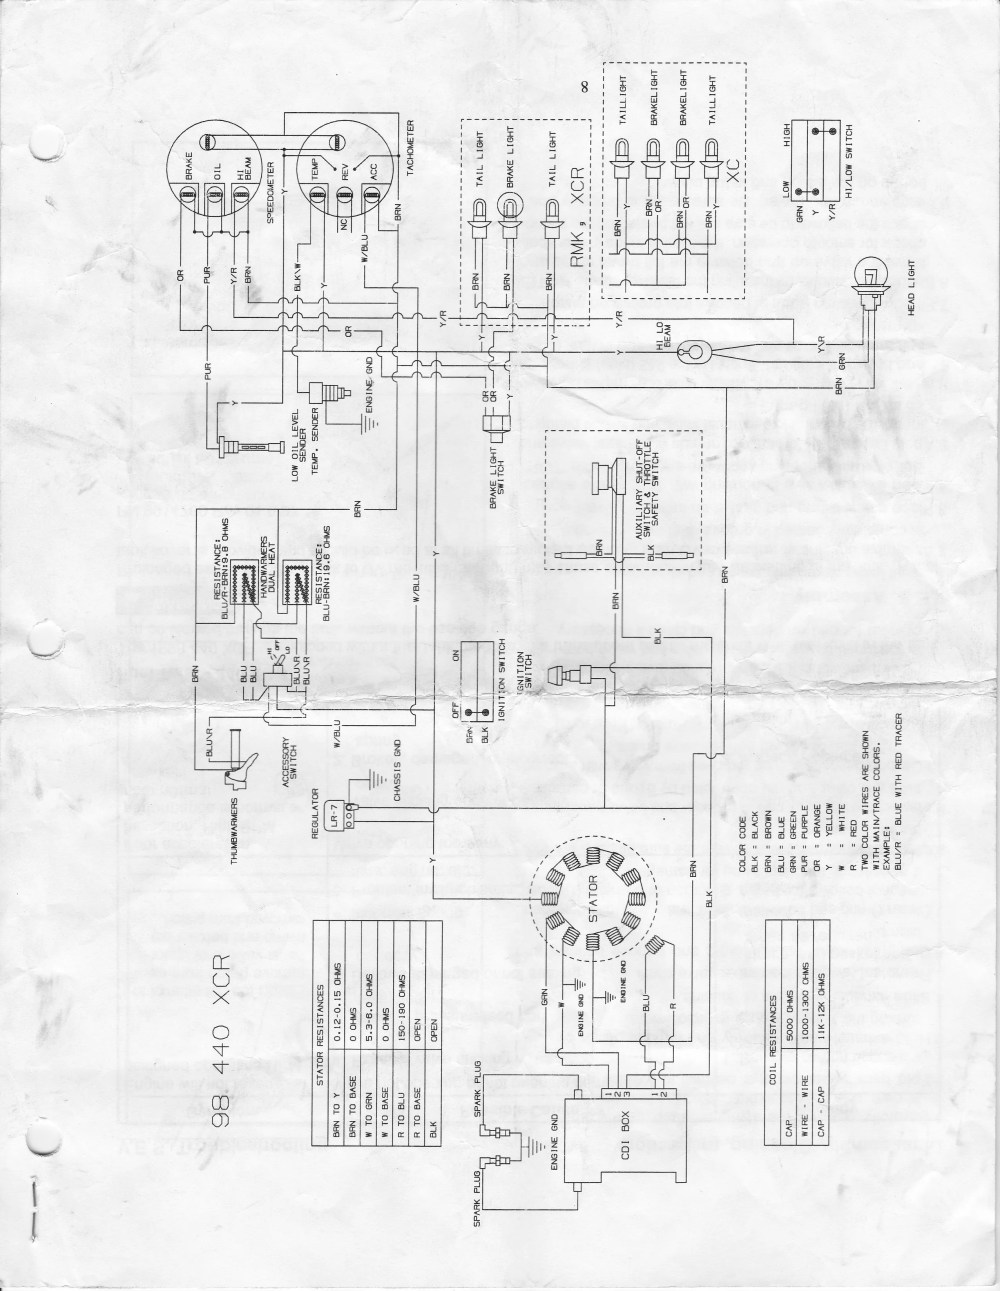 medium resolution of 2003 polaris trail boss wiring harness wiring diagram schematic diagram of polaris atv parts 1989 w897527 trail boss 2x4 wiring